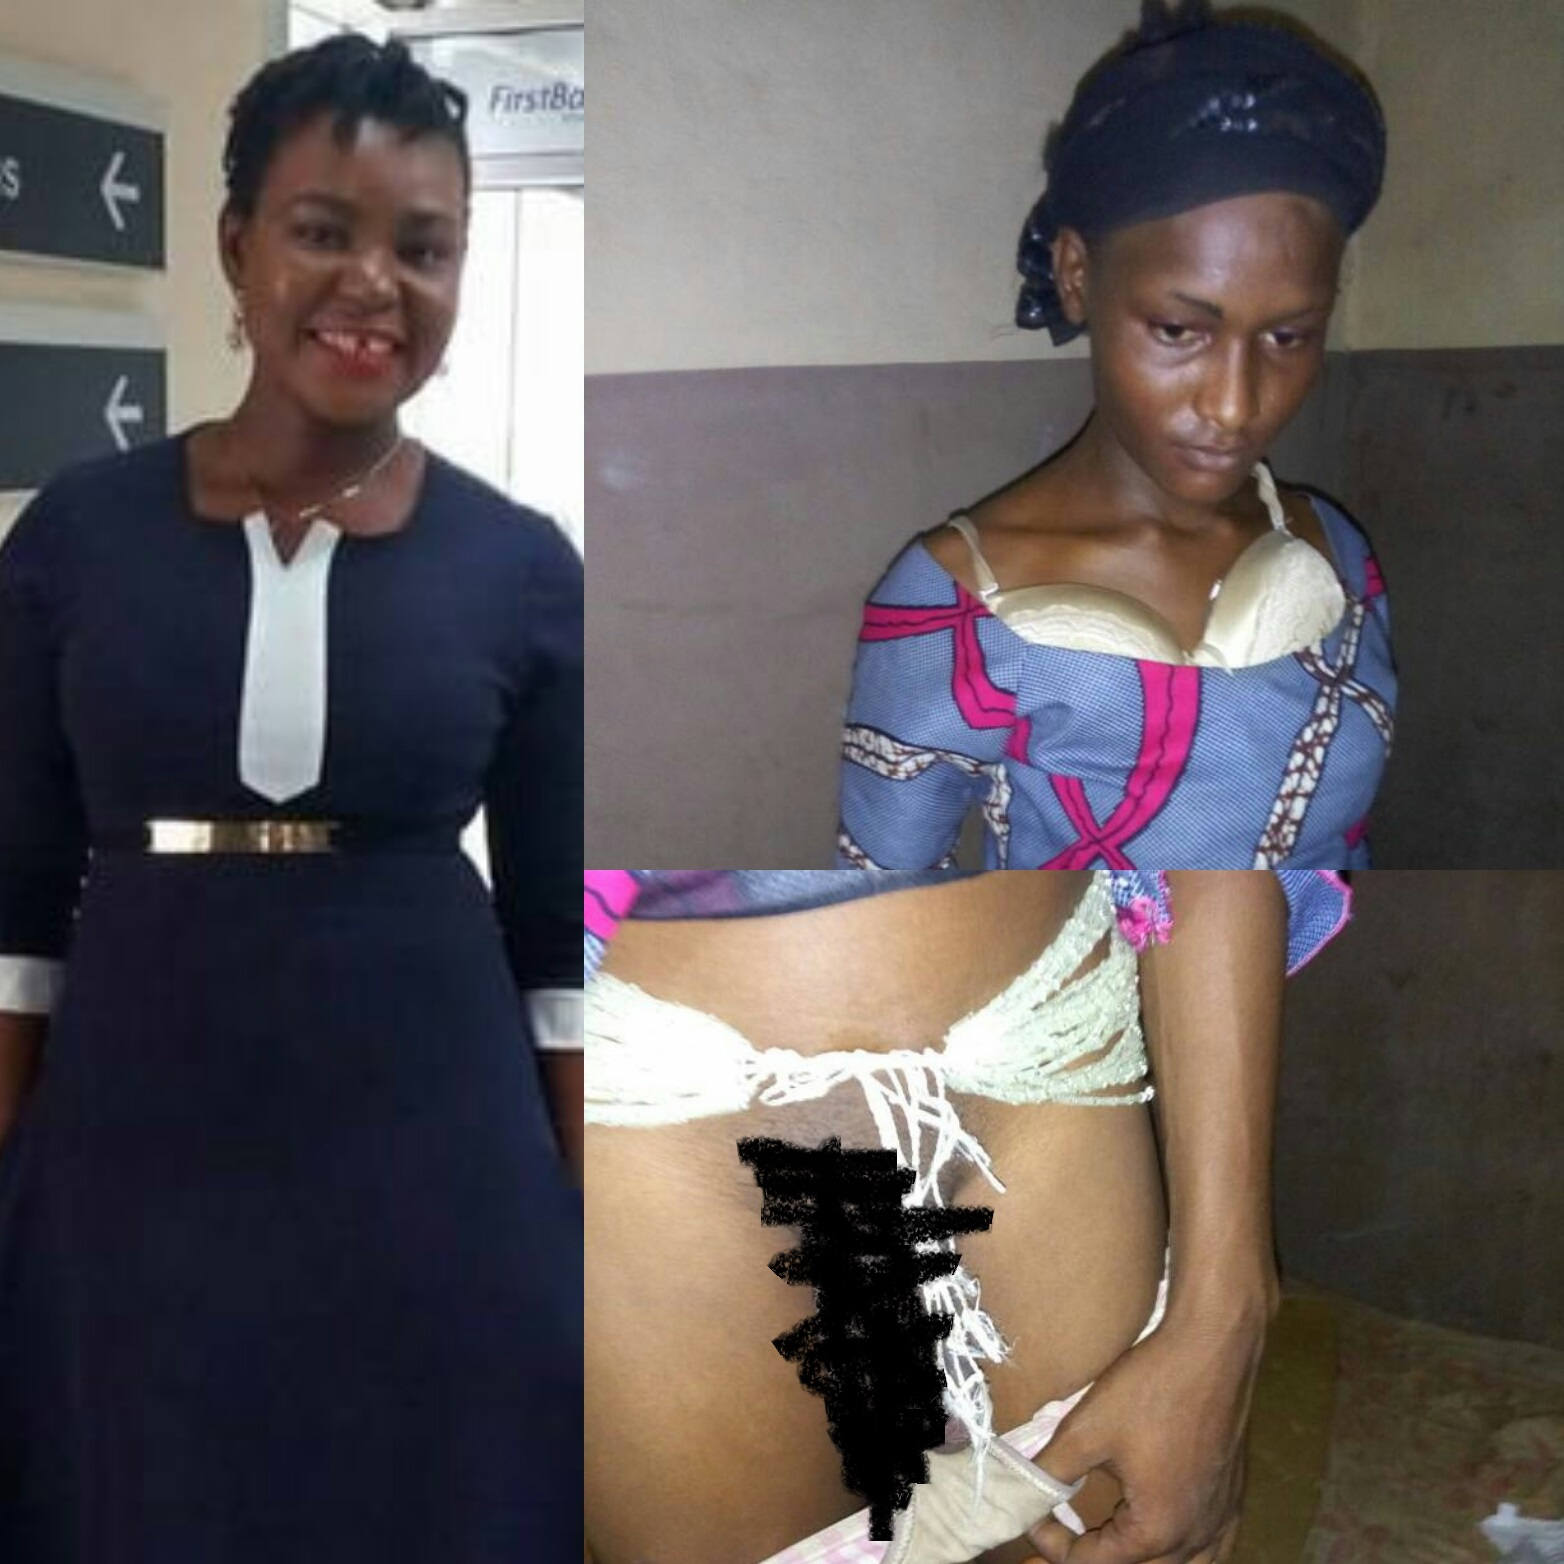 Nigerian woman, who clams to be in the Armed Forces, admires an alleged rapist